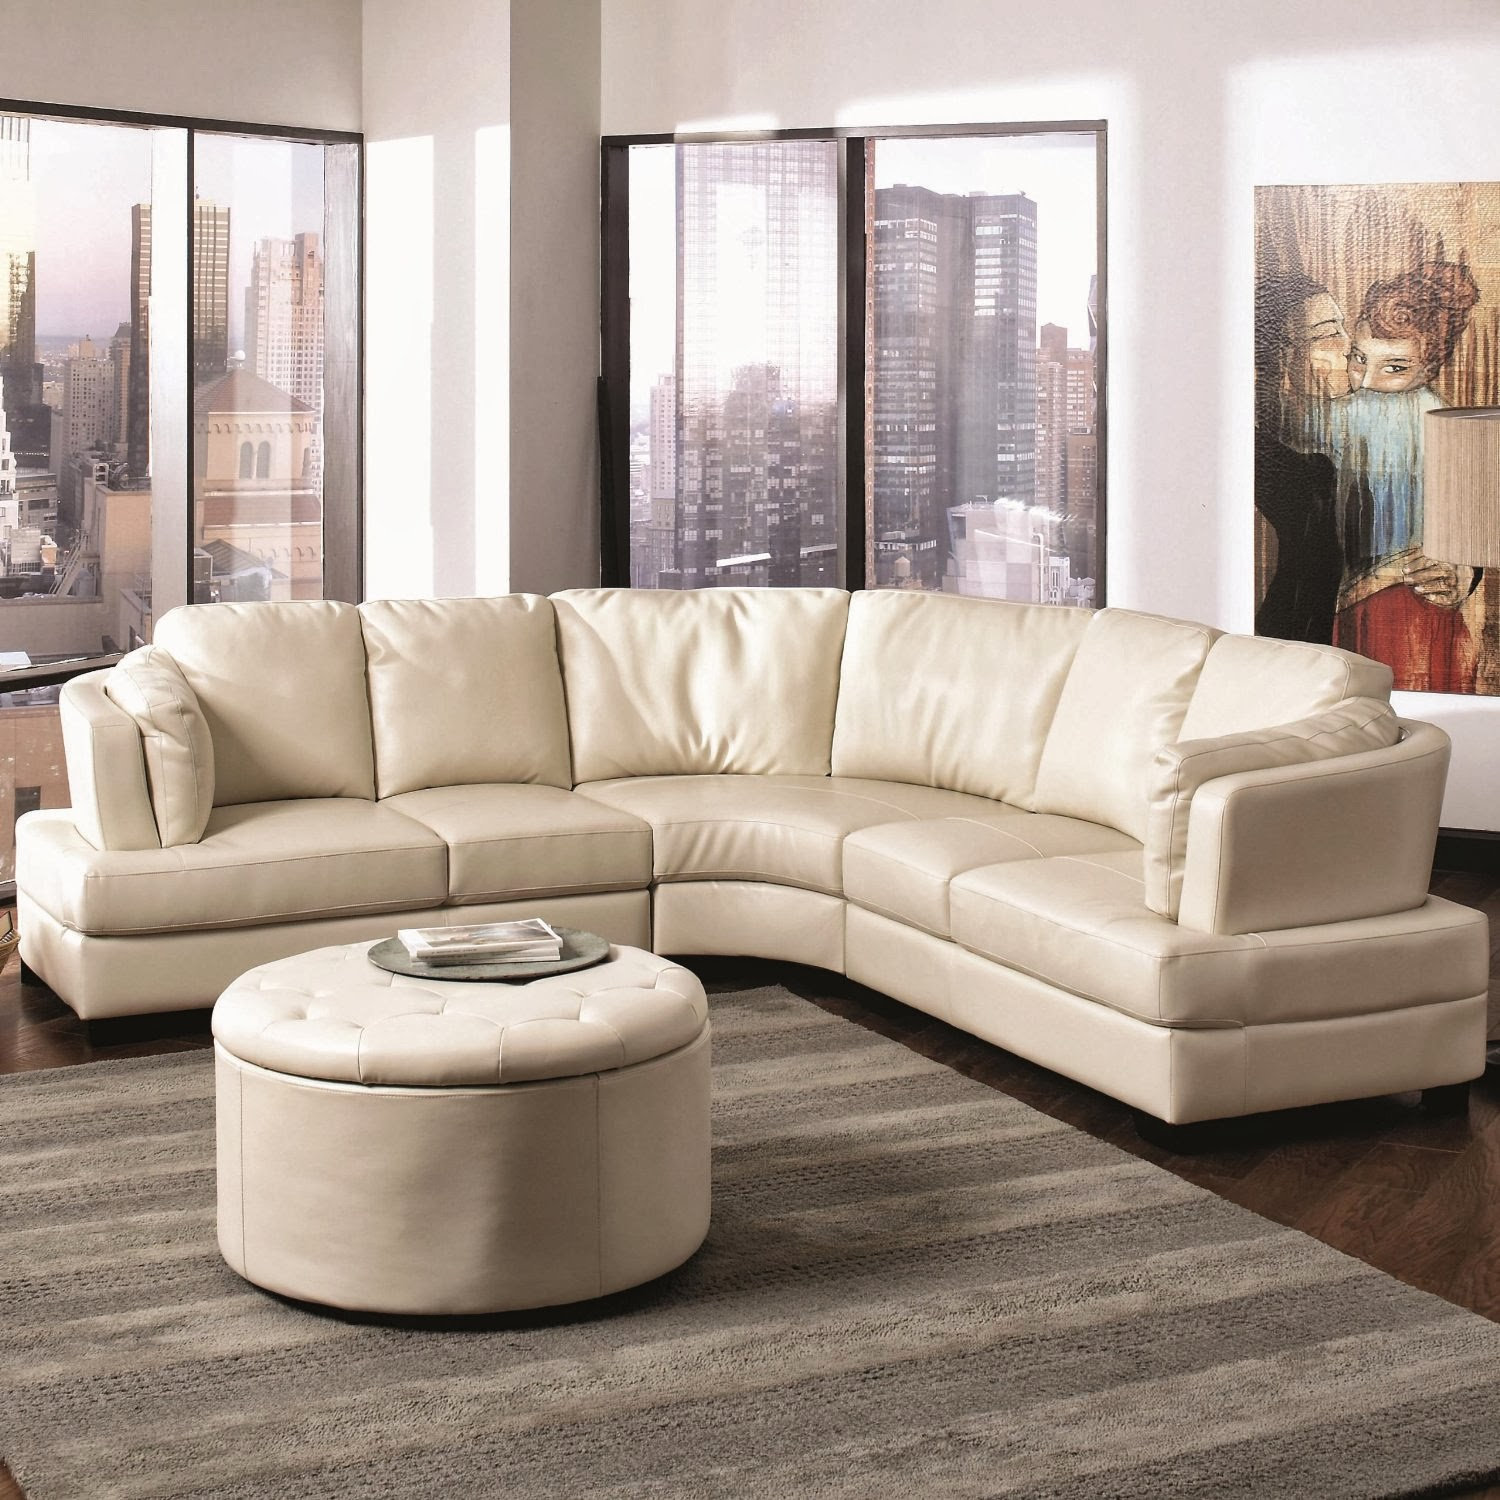 Curved Sectional Sofa Leather Contemporary White Sleeper Buy Online September 2013